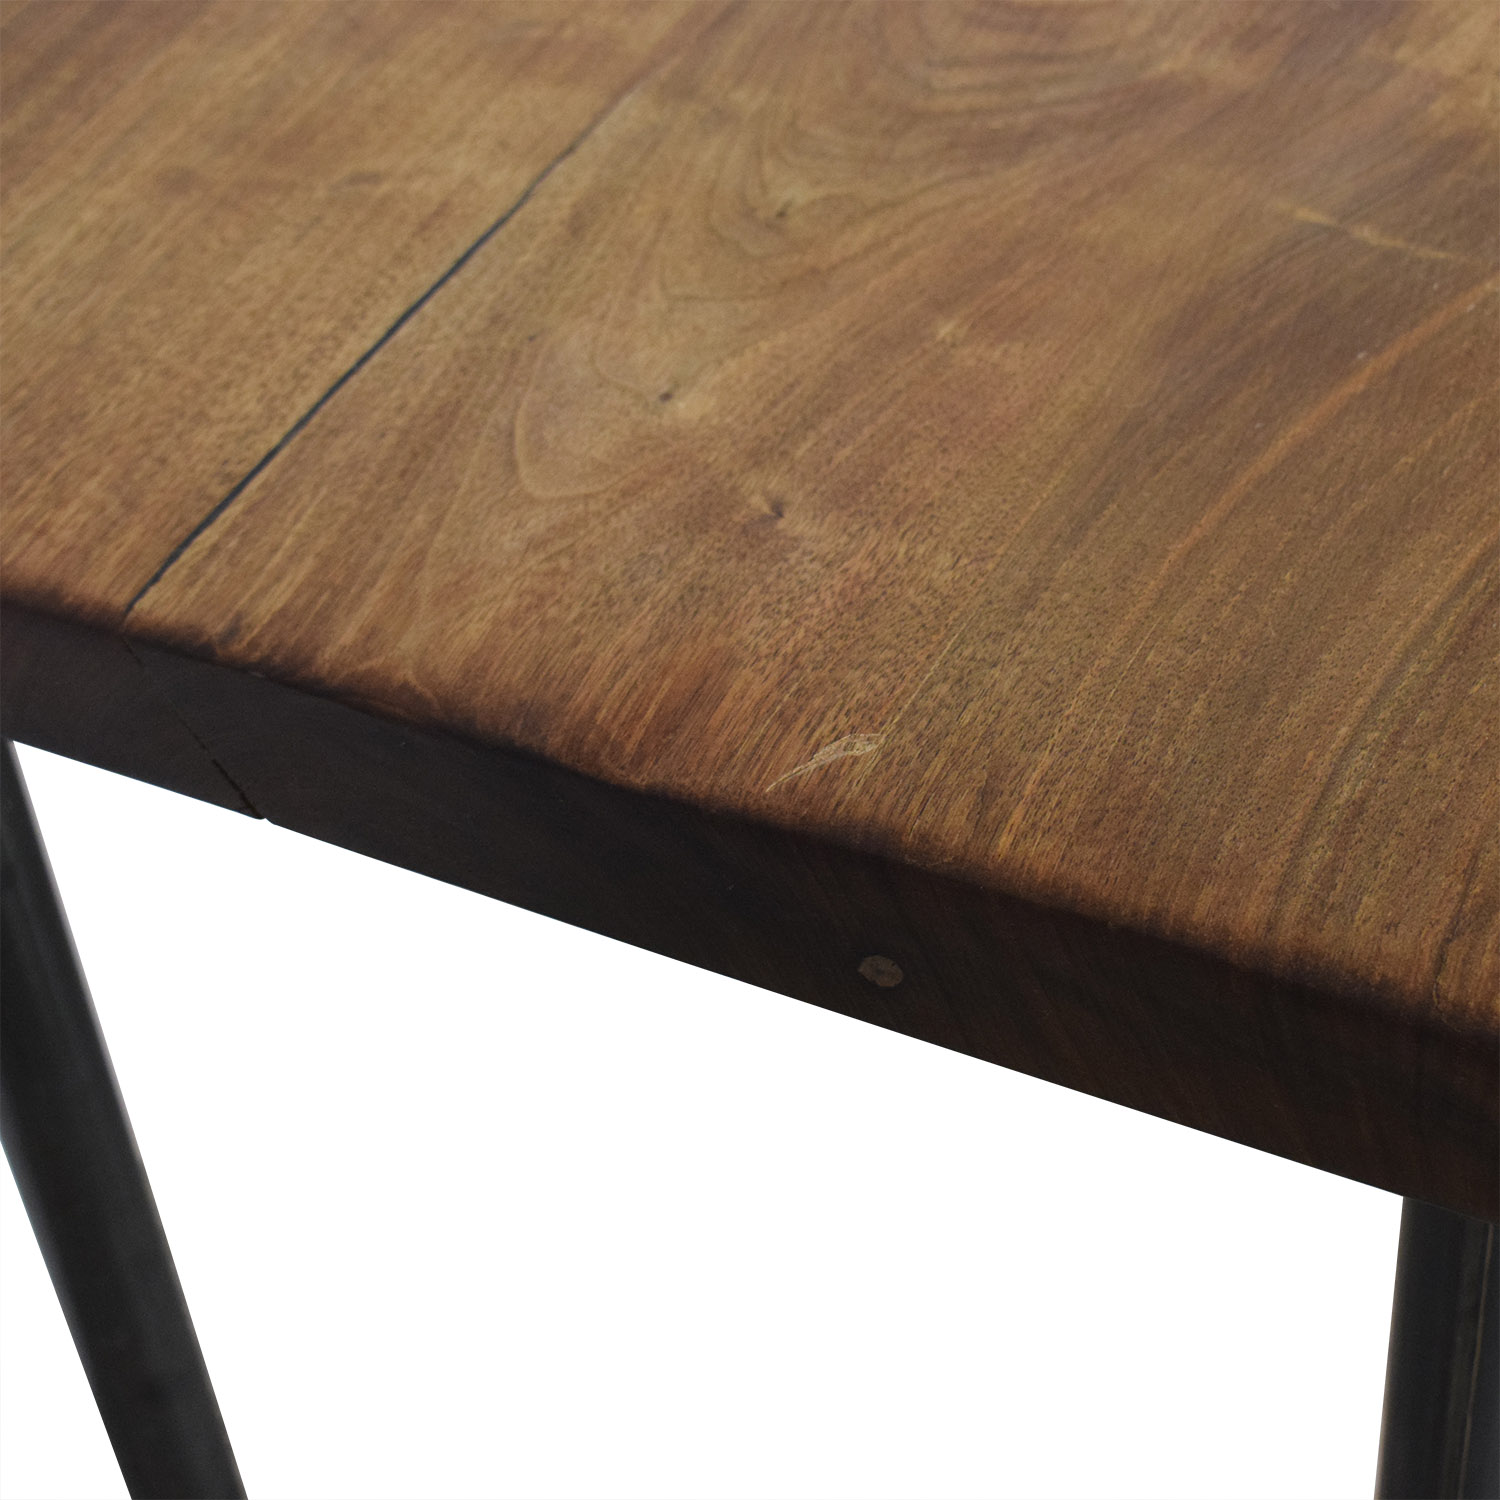 Montana Woods Wooden Coworking Desk or Conference Table